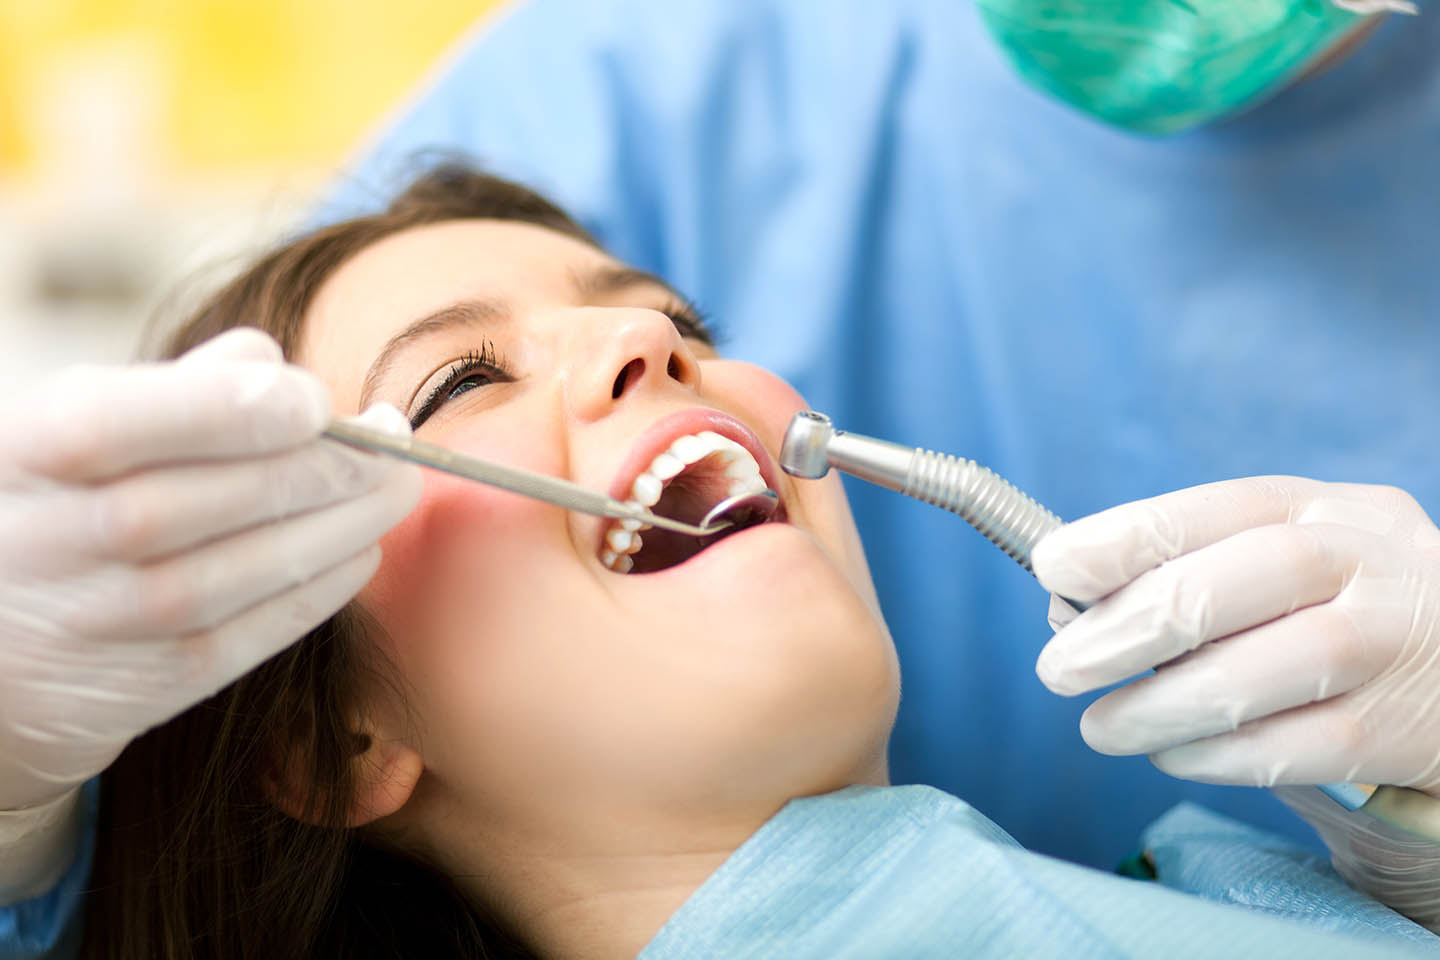 Young woman receiving teeth cleaning